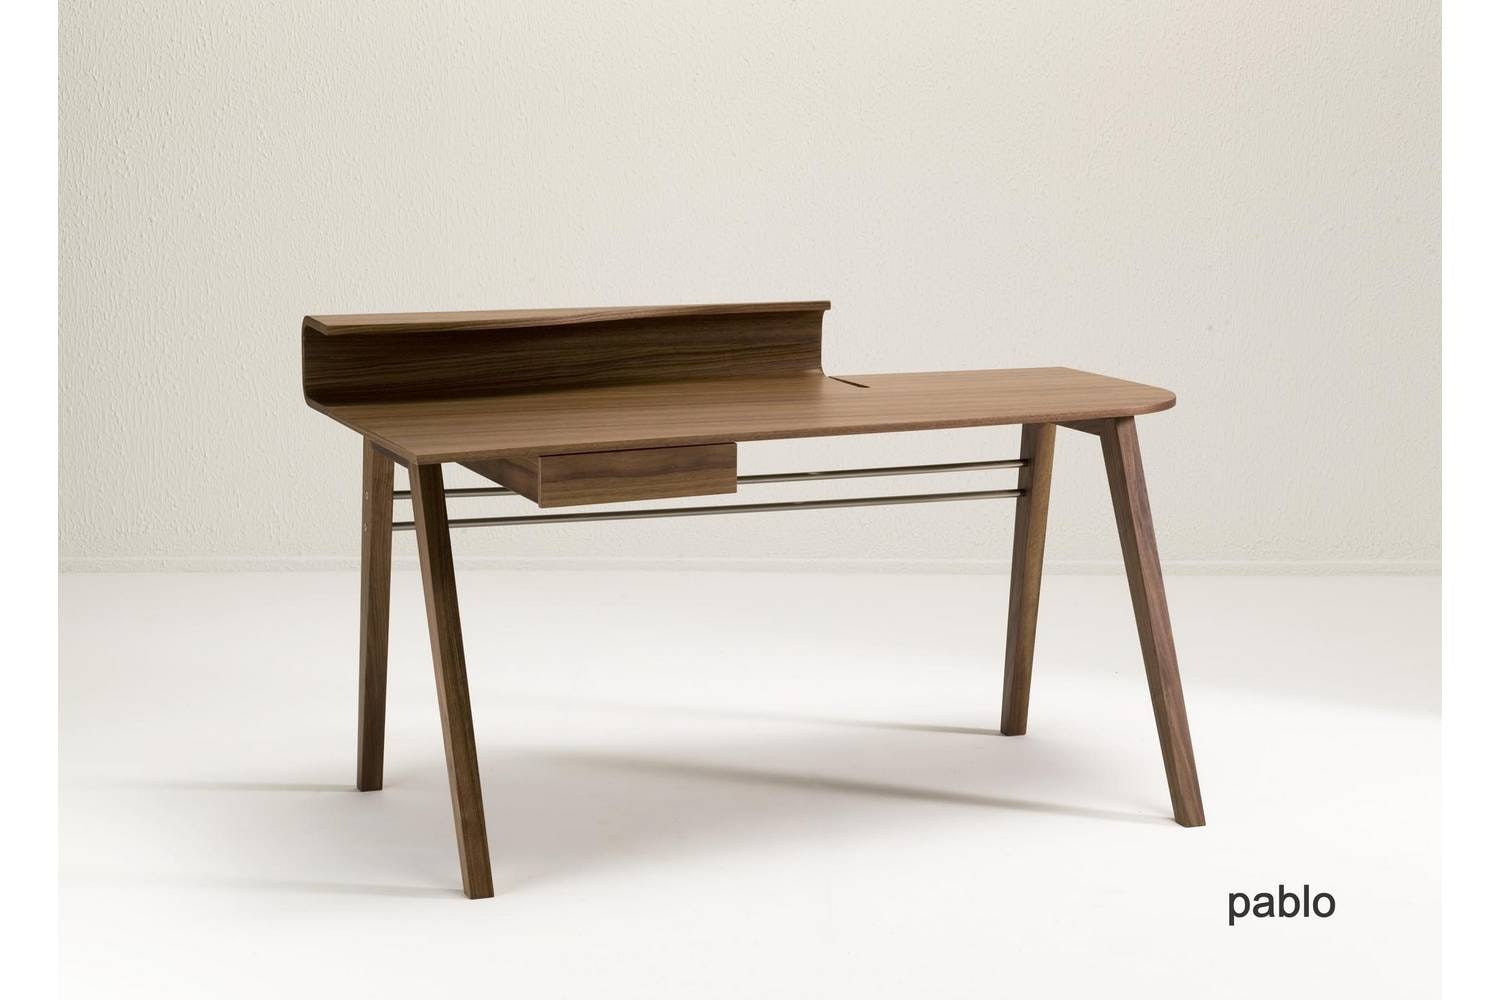 Pablo Writing Desk by M. Walraven for Porada